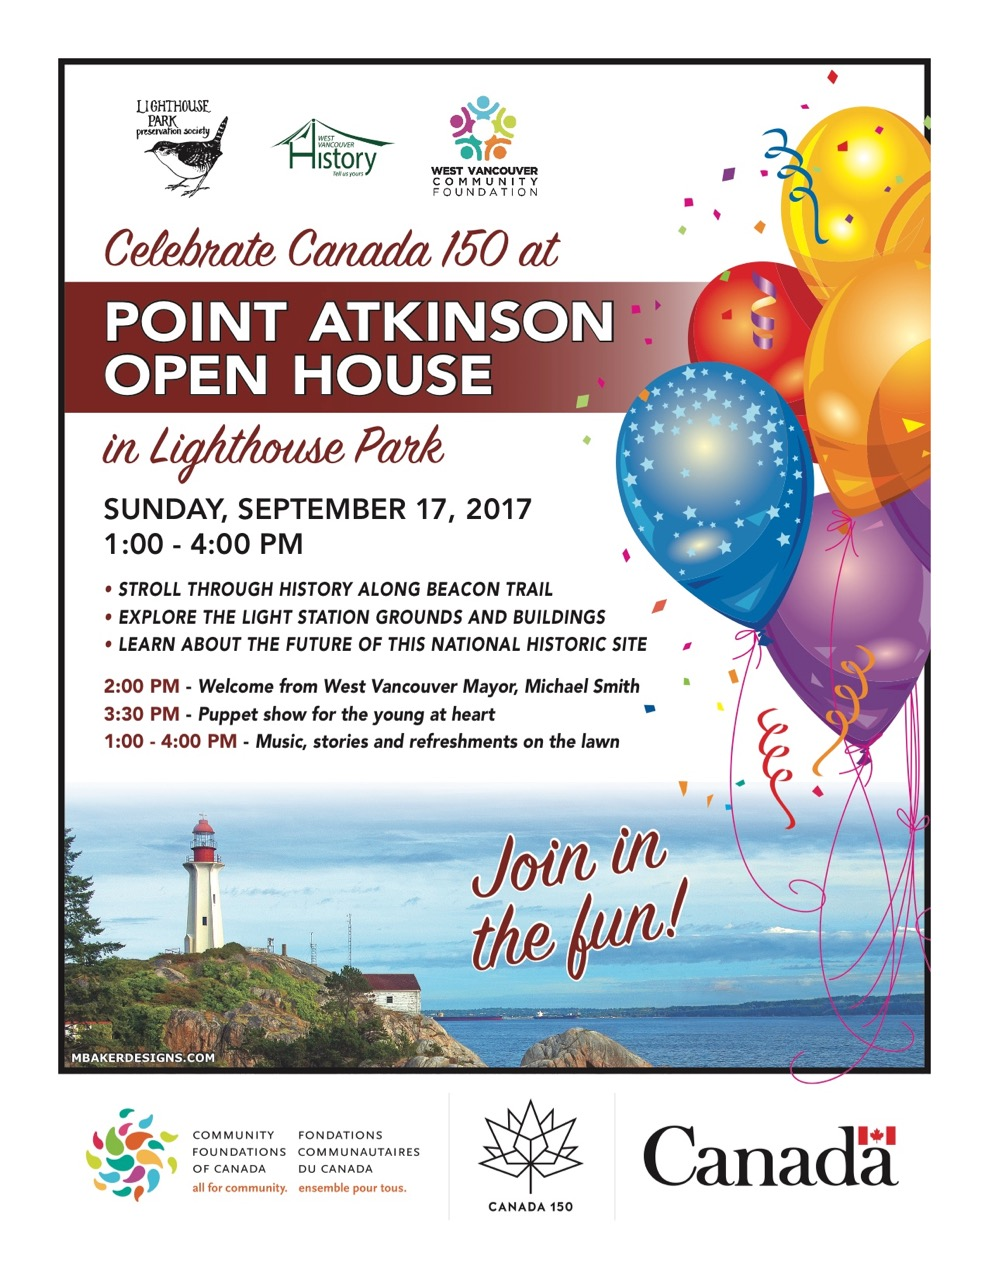 08_AUG2017_LHP_POSTER_REV2 (1) BEACON CANADA 150 (004).jpg